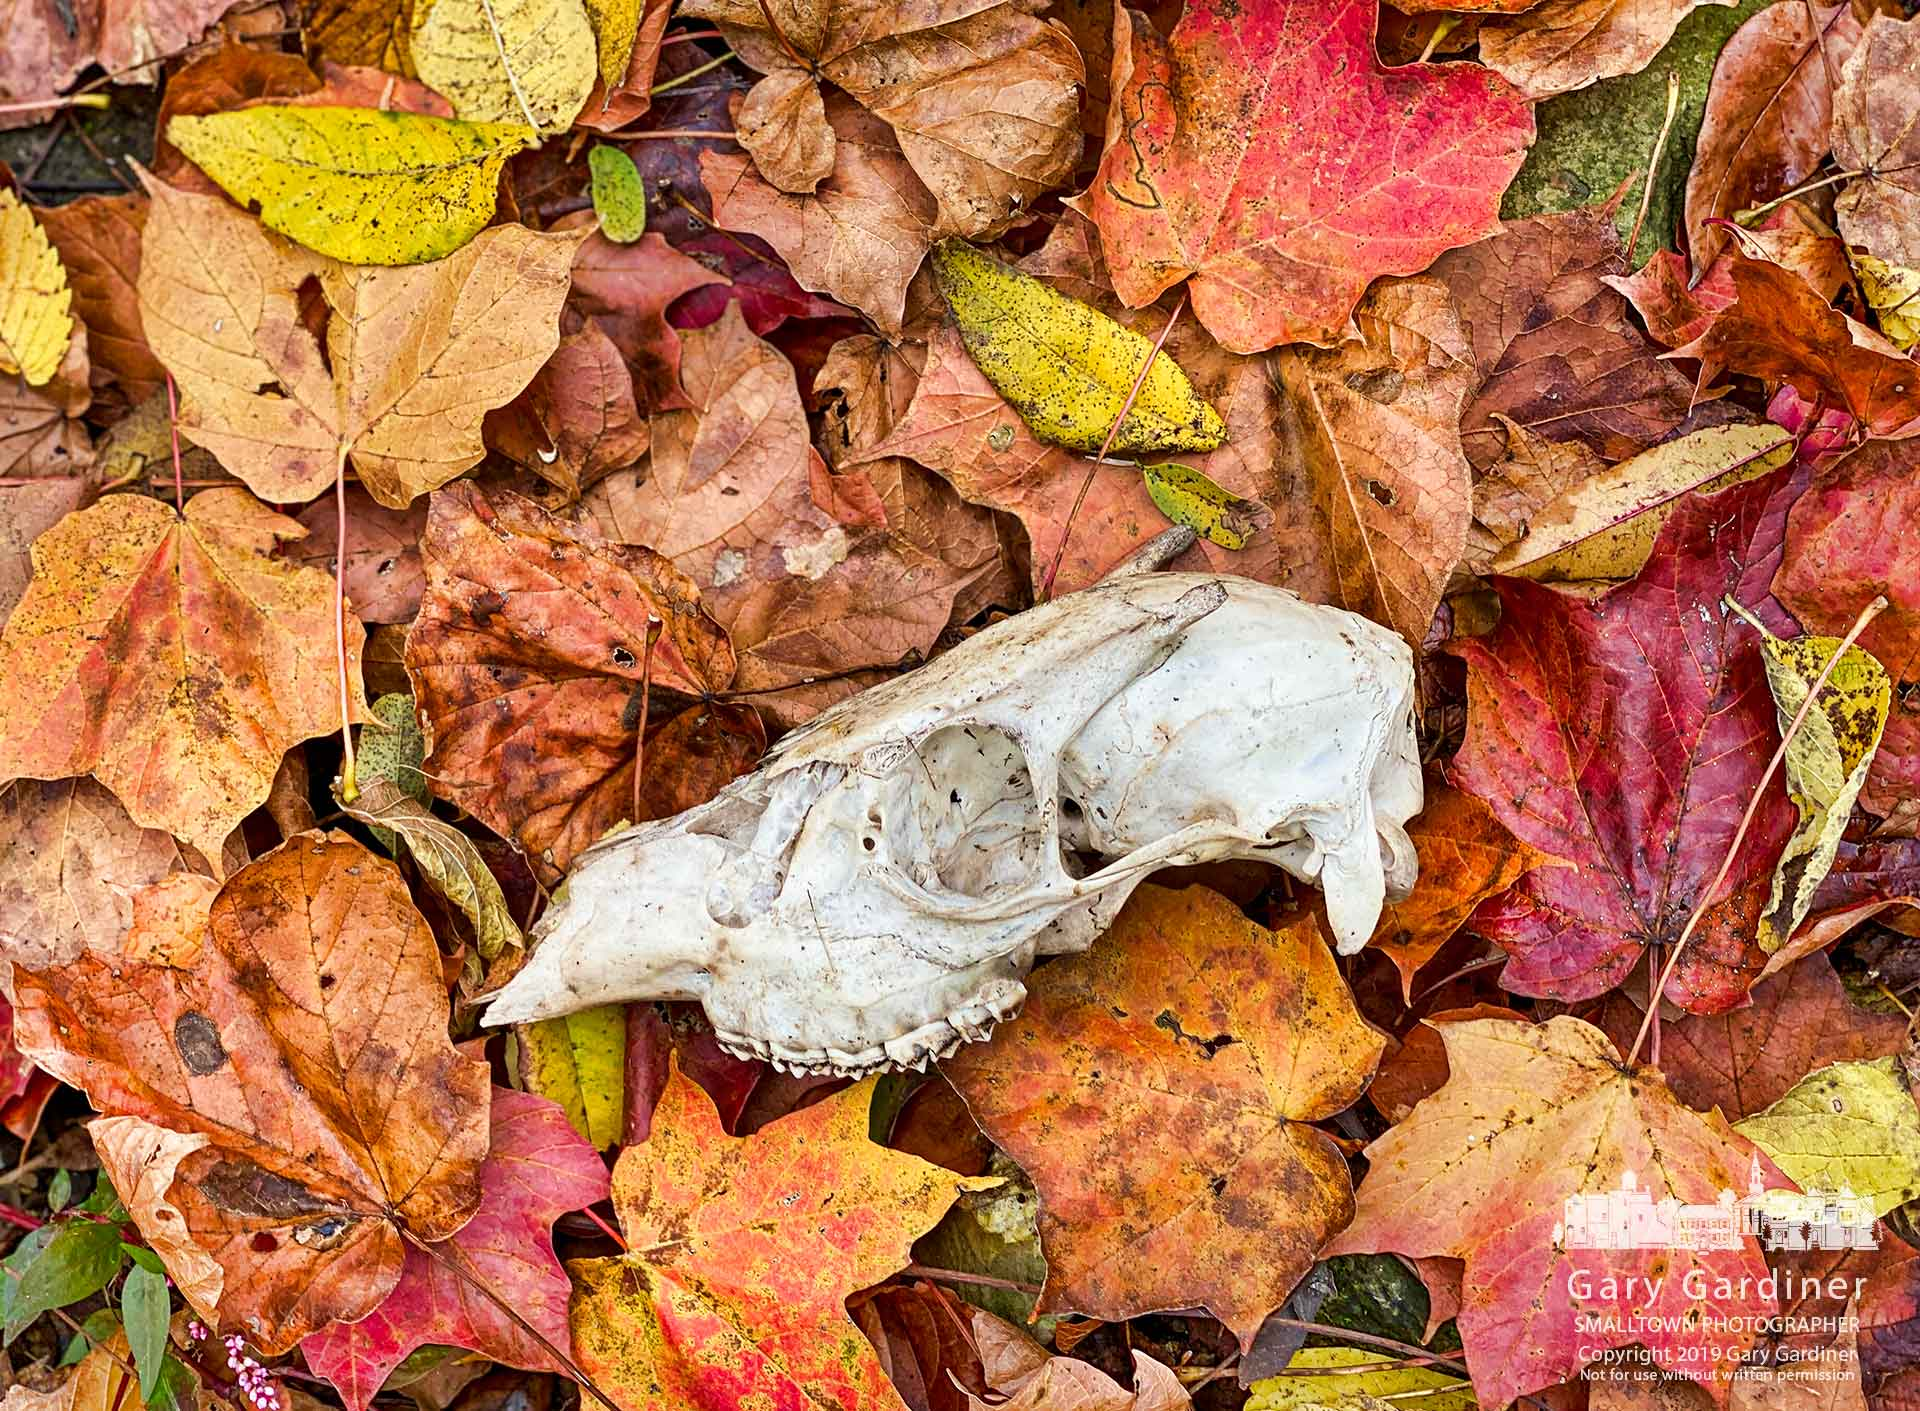 The skull of a young buck sits on a bed of fall leaves along a creekbed from a stream near Africa Road that leads to Alum Creek. My Final Photo for Oct. 22, 2019.